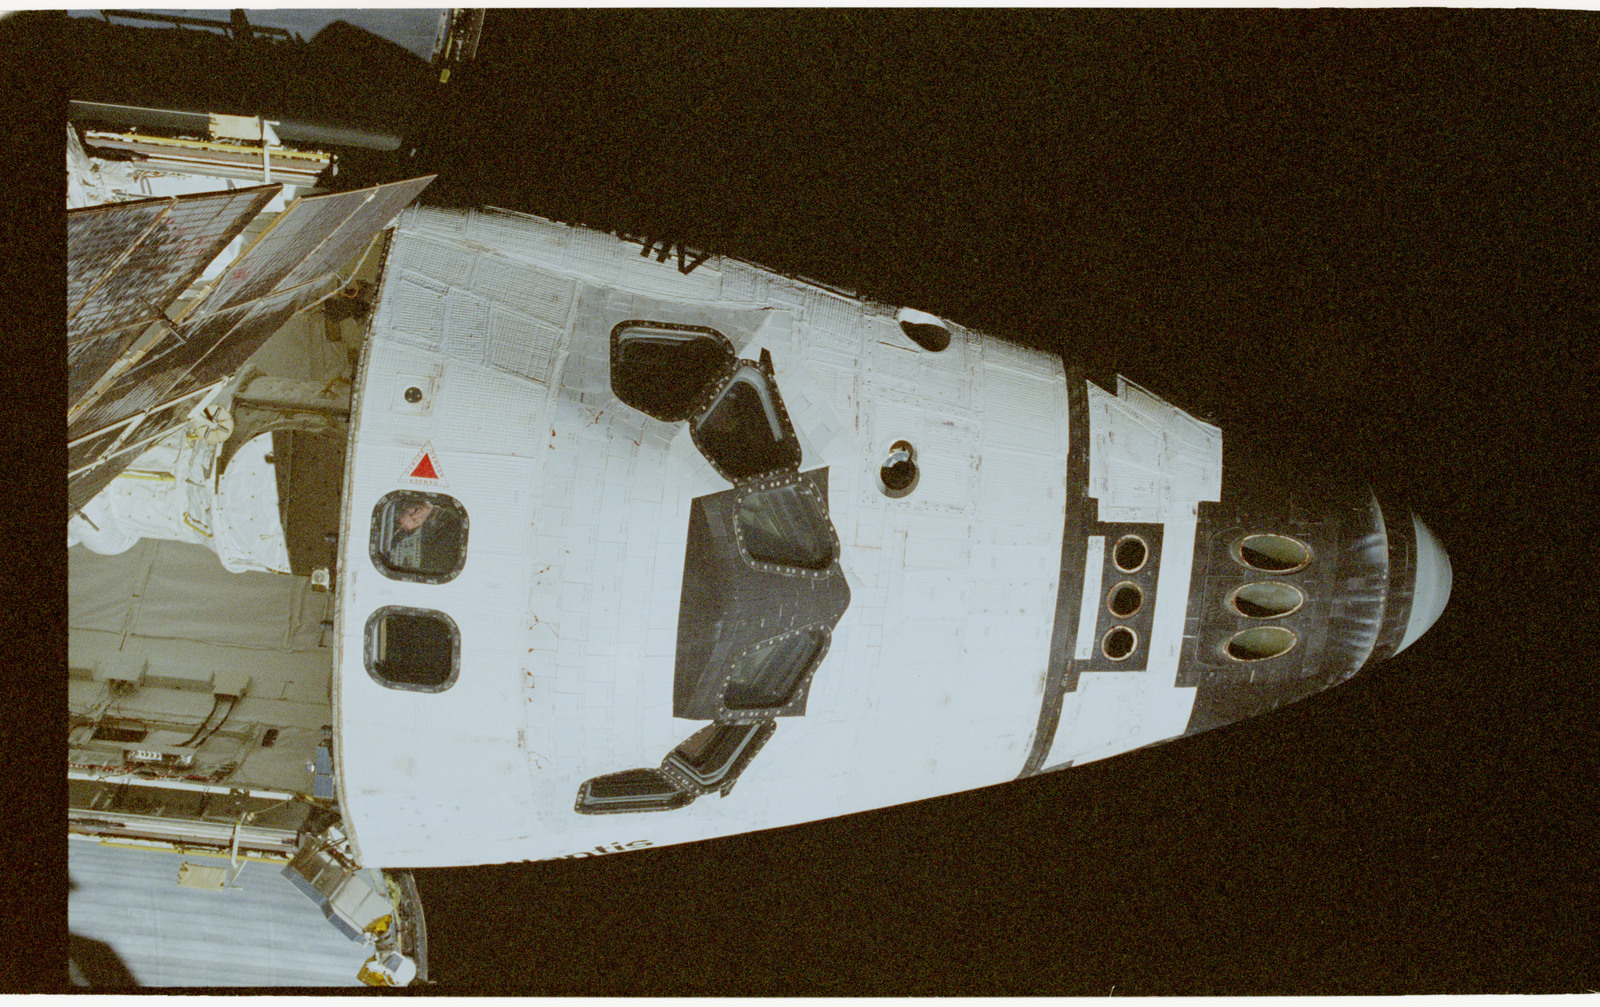 STS074-347-027 - STS-074 - View of forward section of Atlantis from Mir